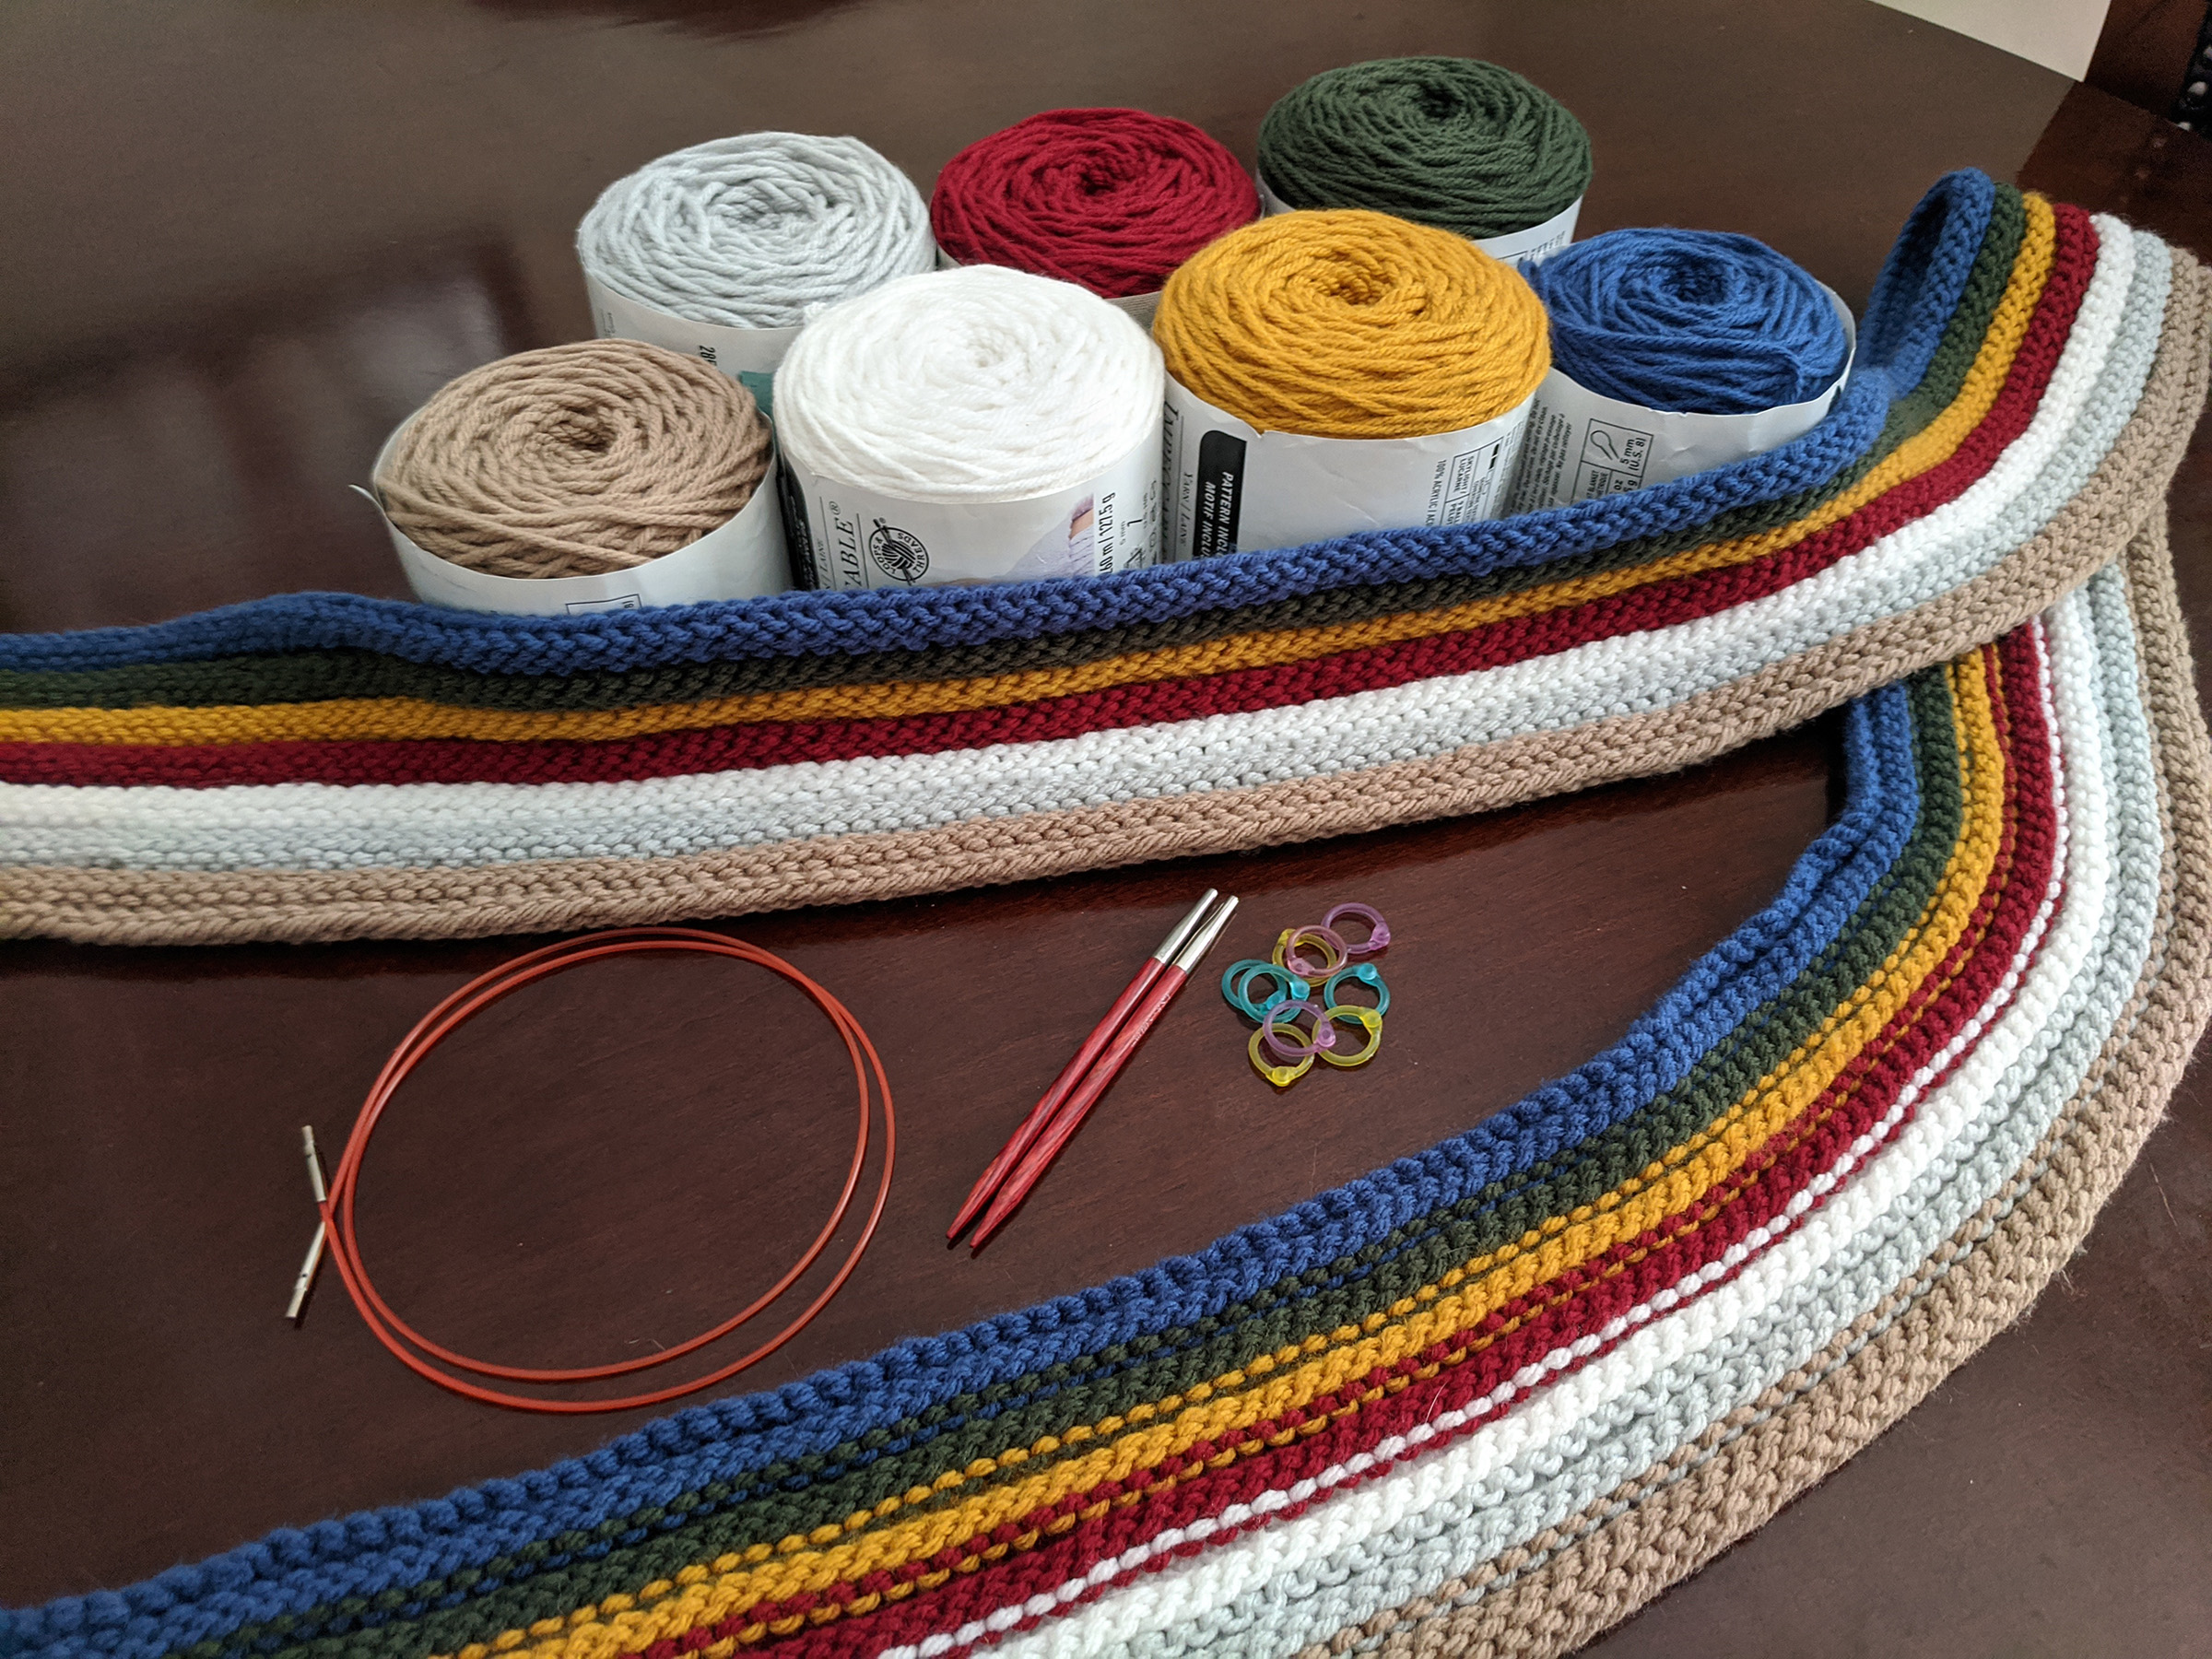 Scarf and supplies